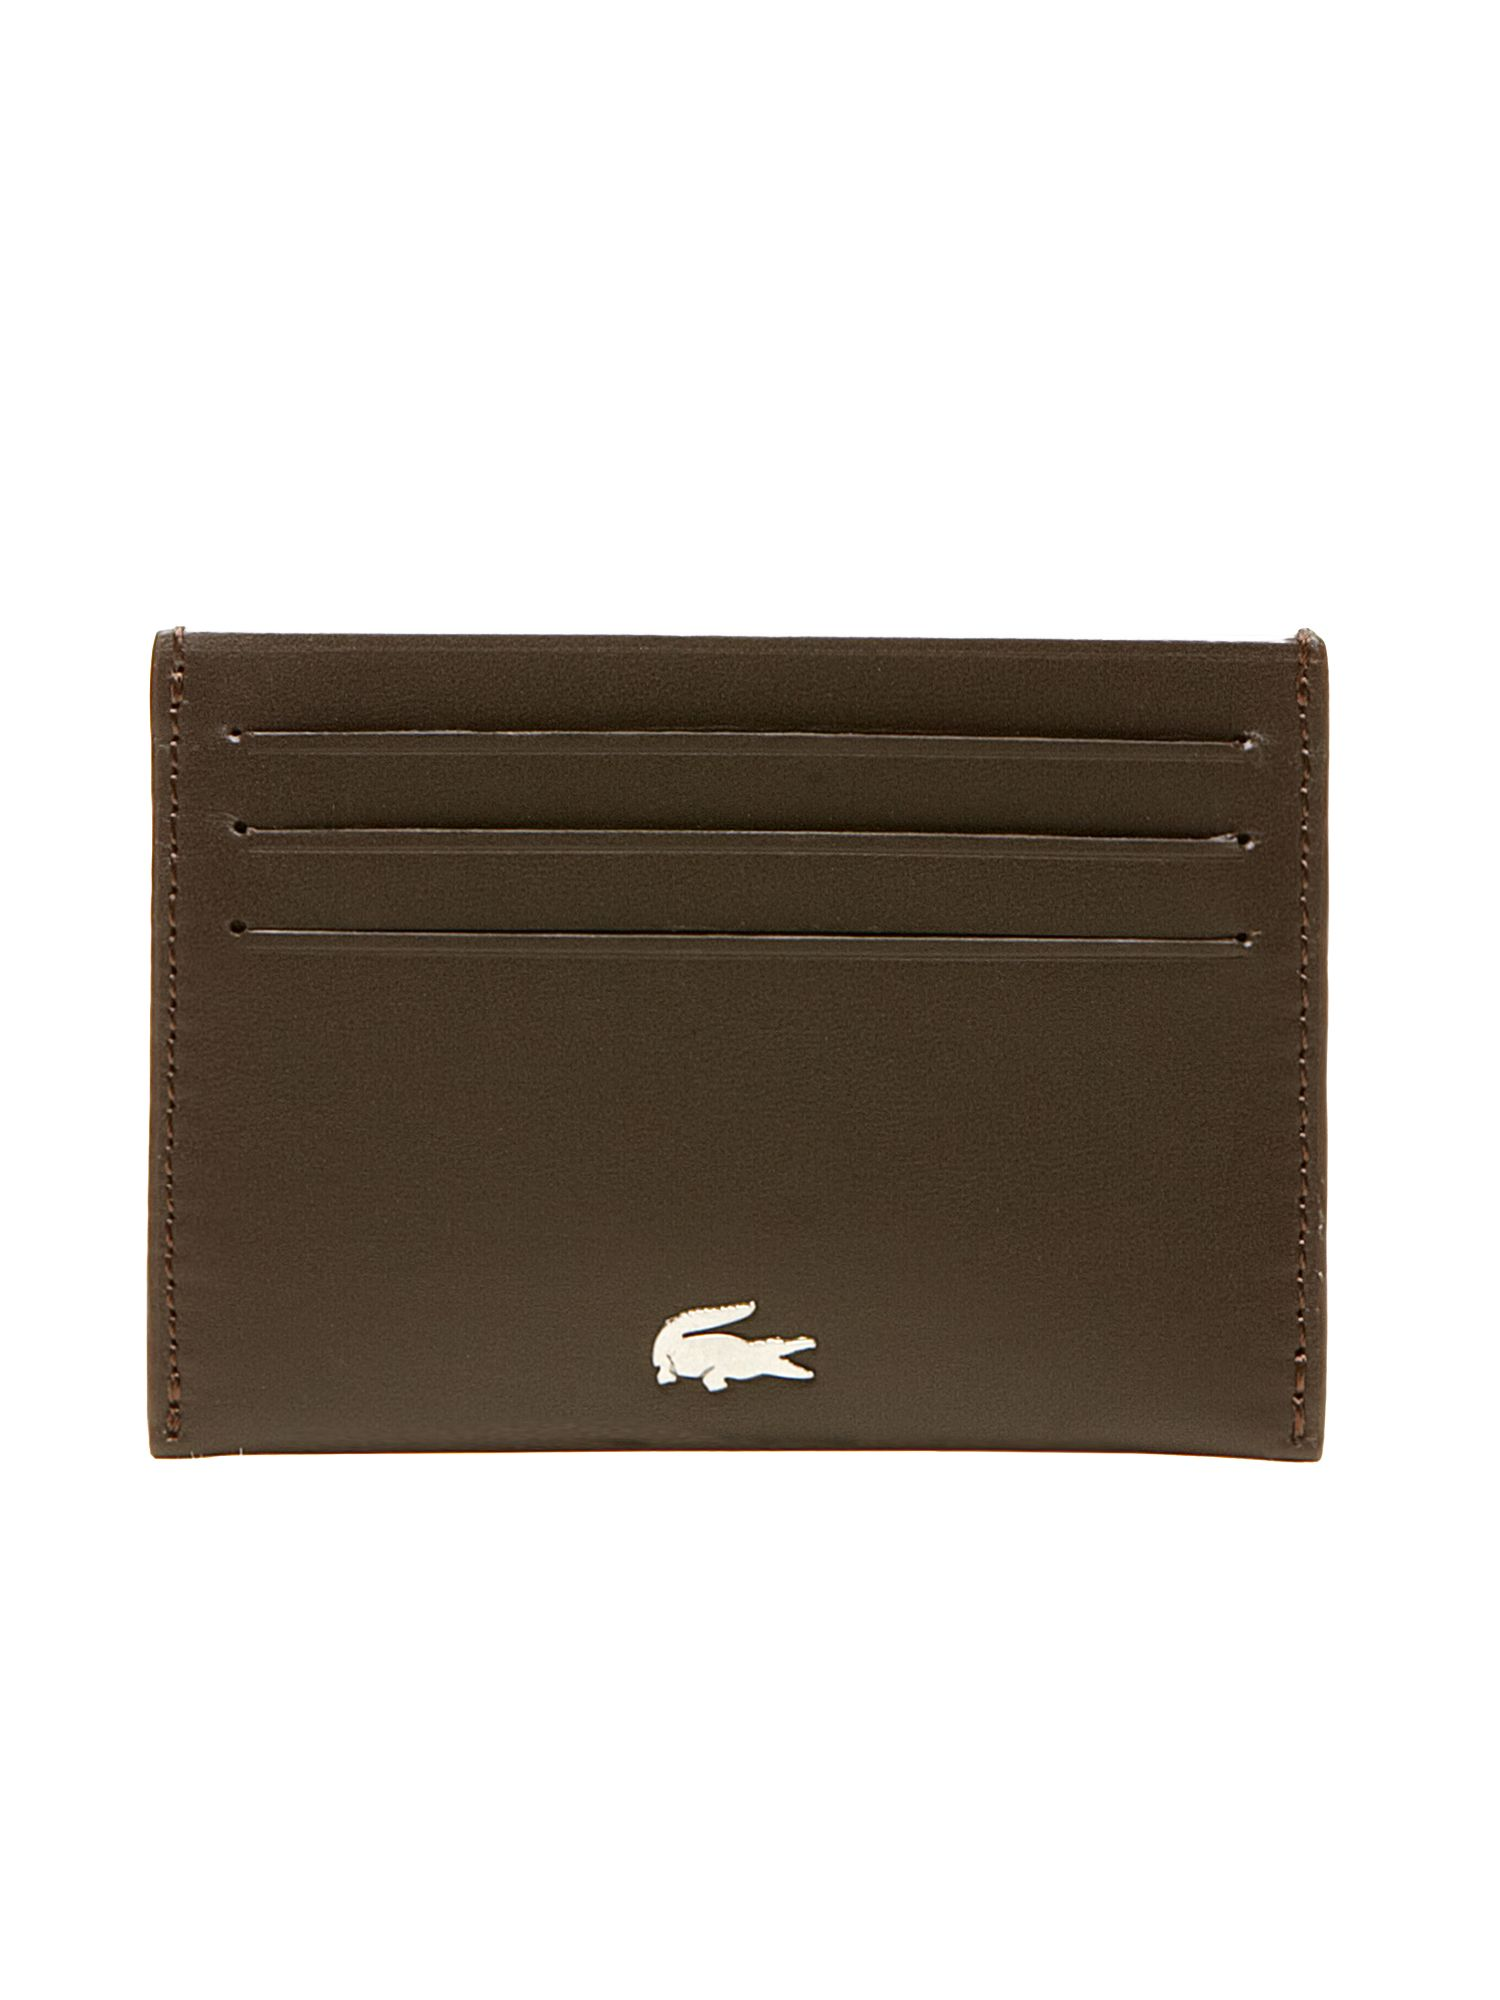 Lacoste Card Holder in Leather, Bottle Green